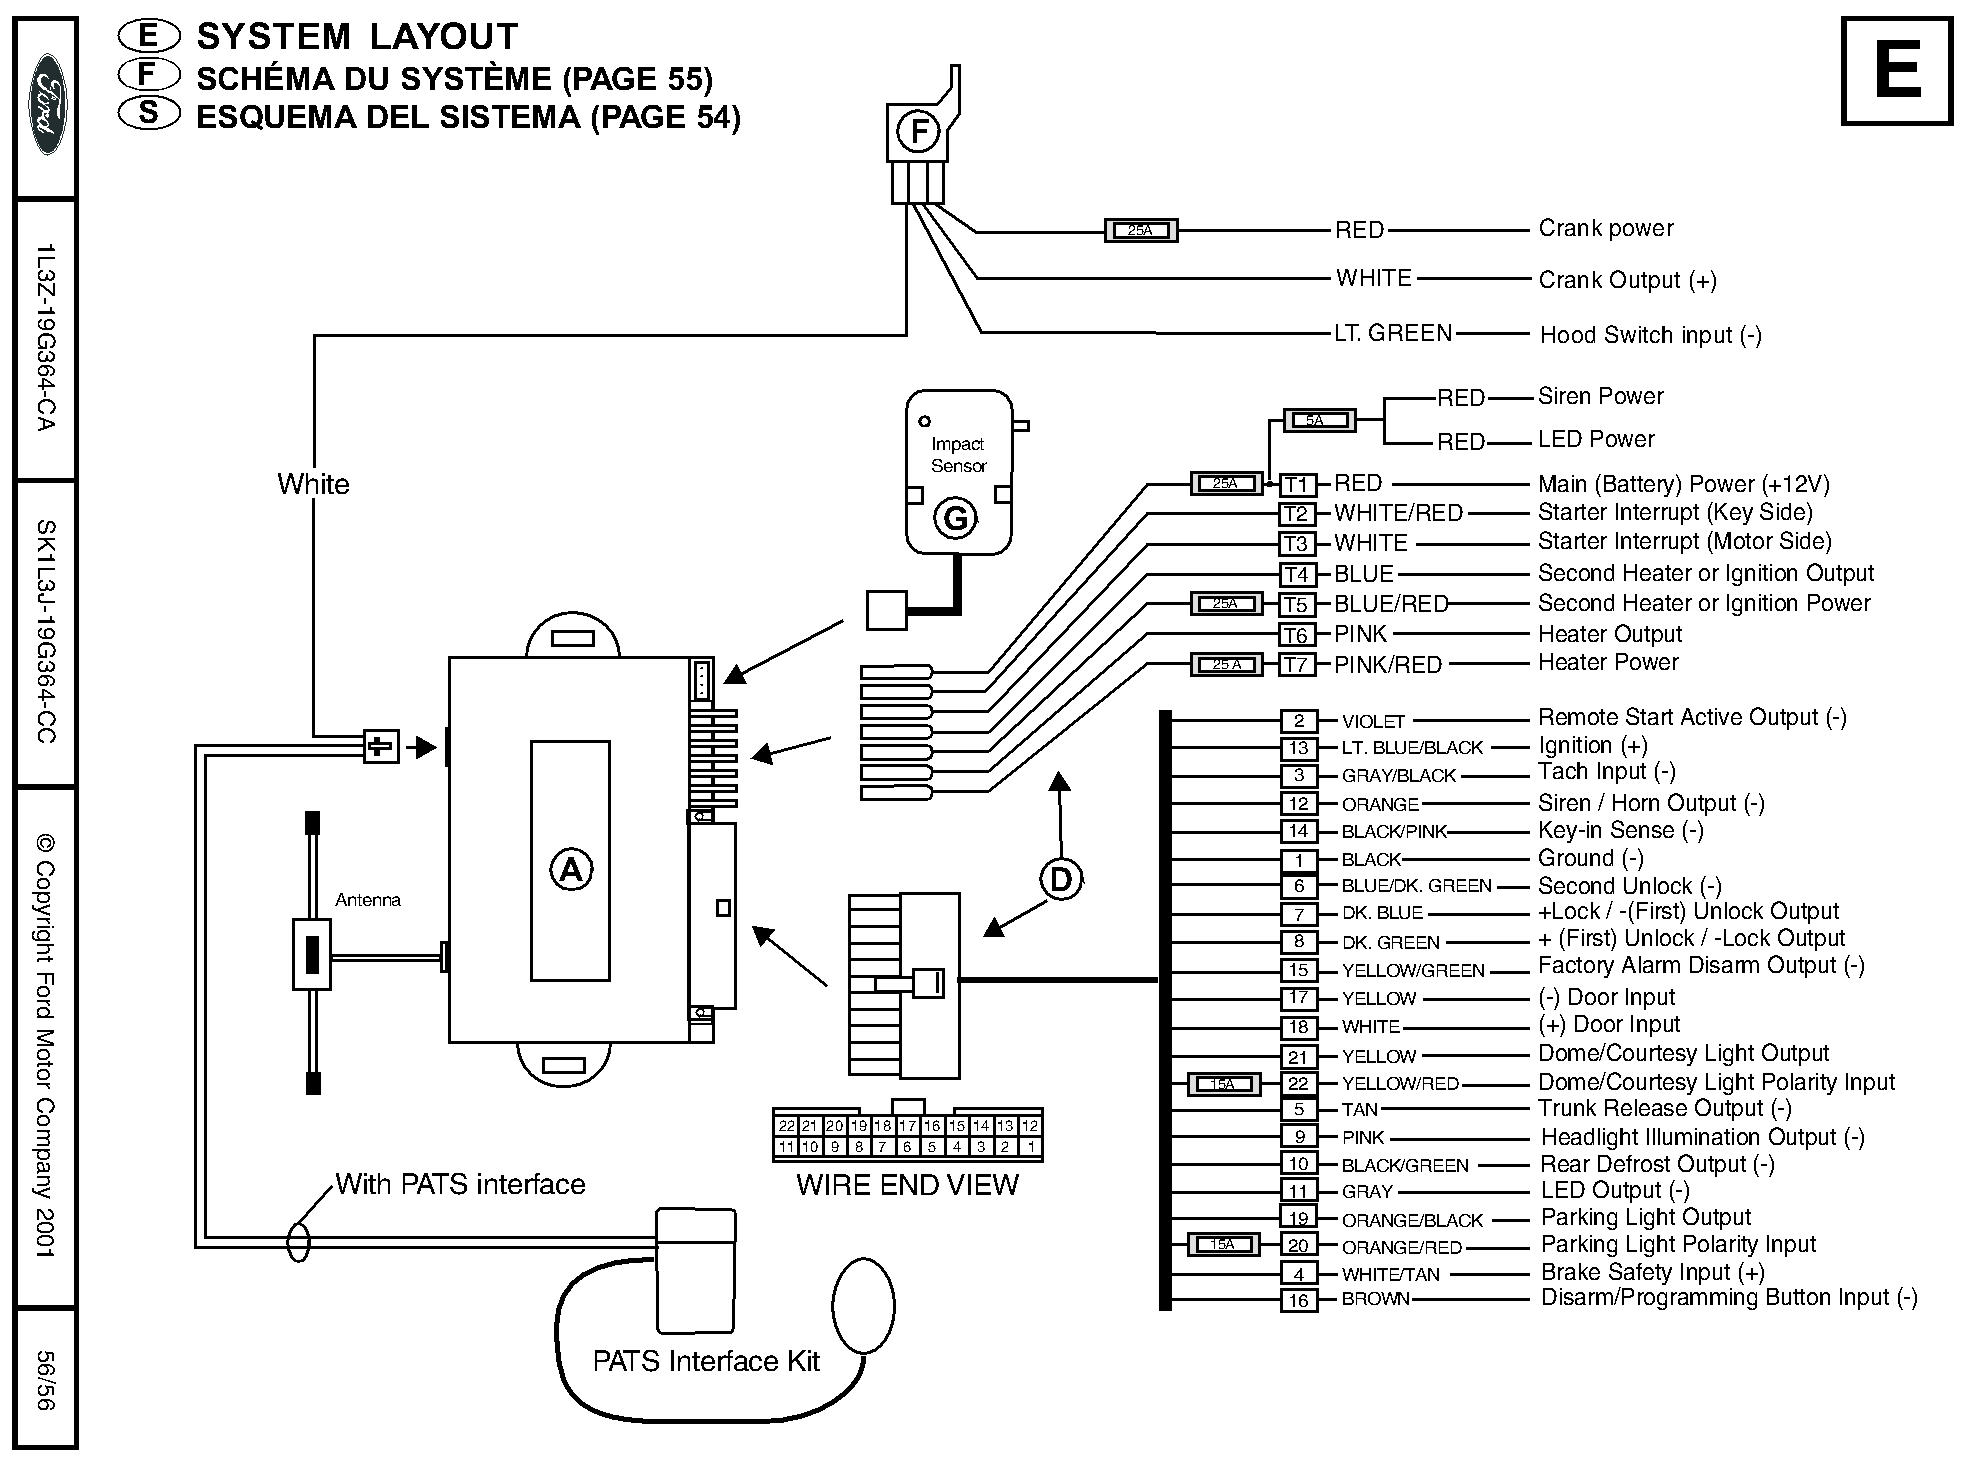 fordgoldstarter command start wiring diagram automotive wiring diagrams \u2022 wiring viper remote start wiring diagram at readyjetset.co